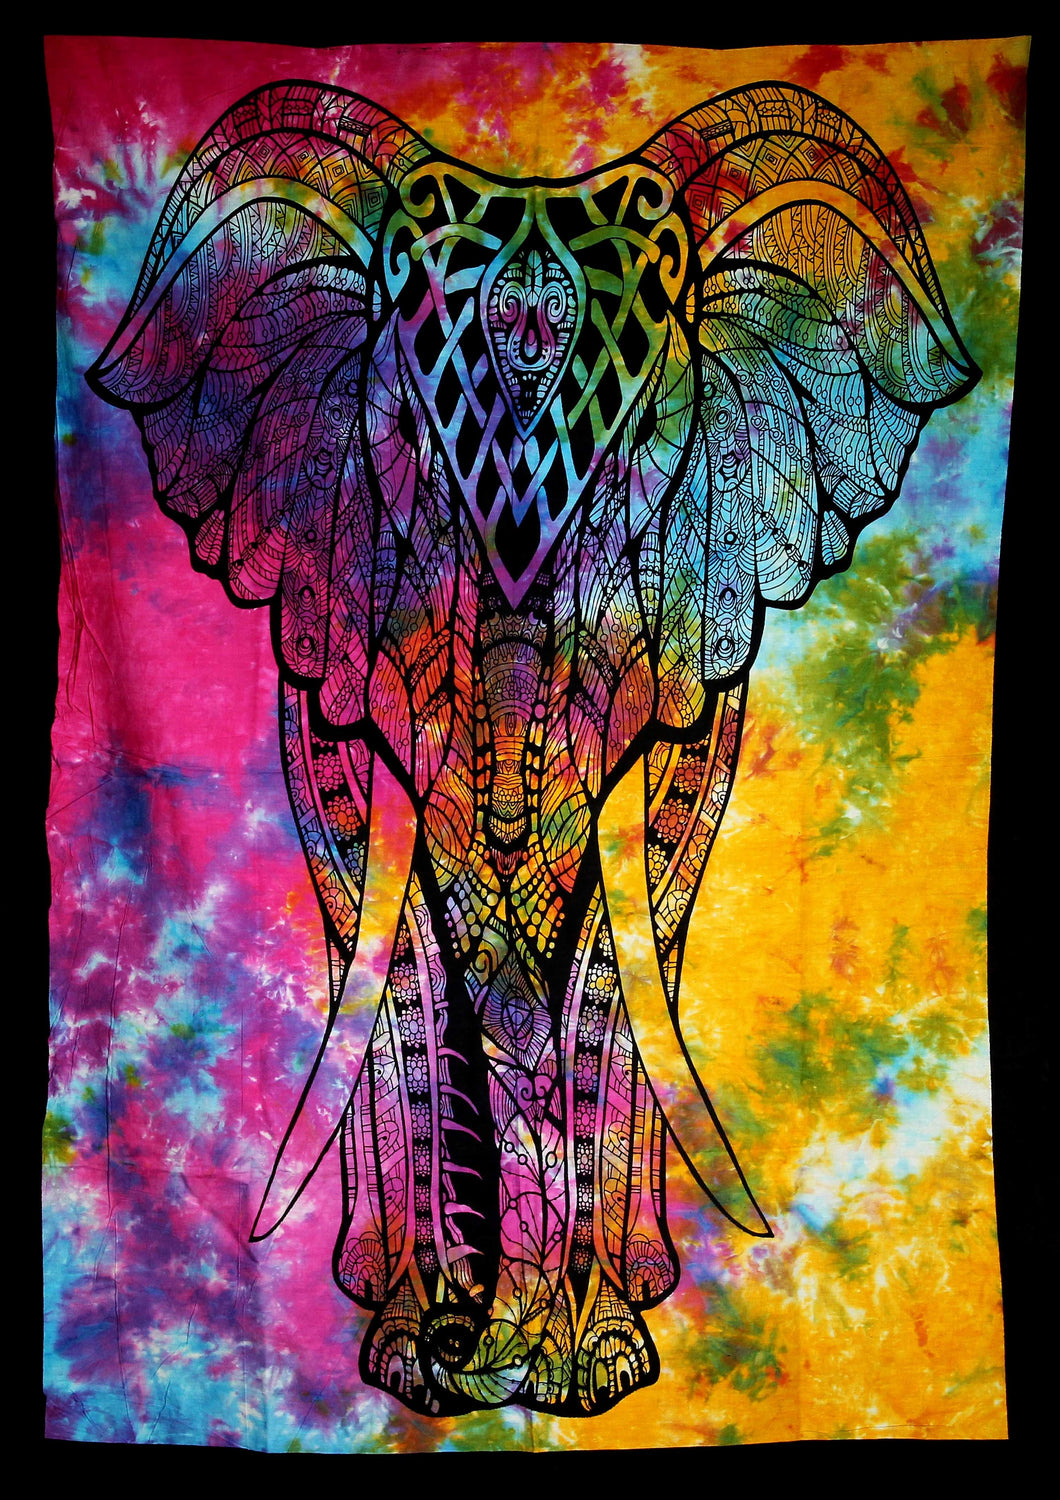 Hand printed Fabric Posters Mini Elephant Tapestries Wall Hangings - Available in 5 Colors